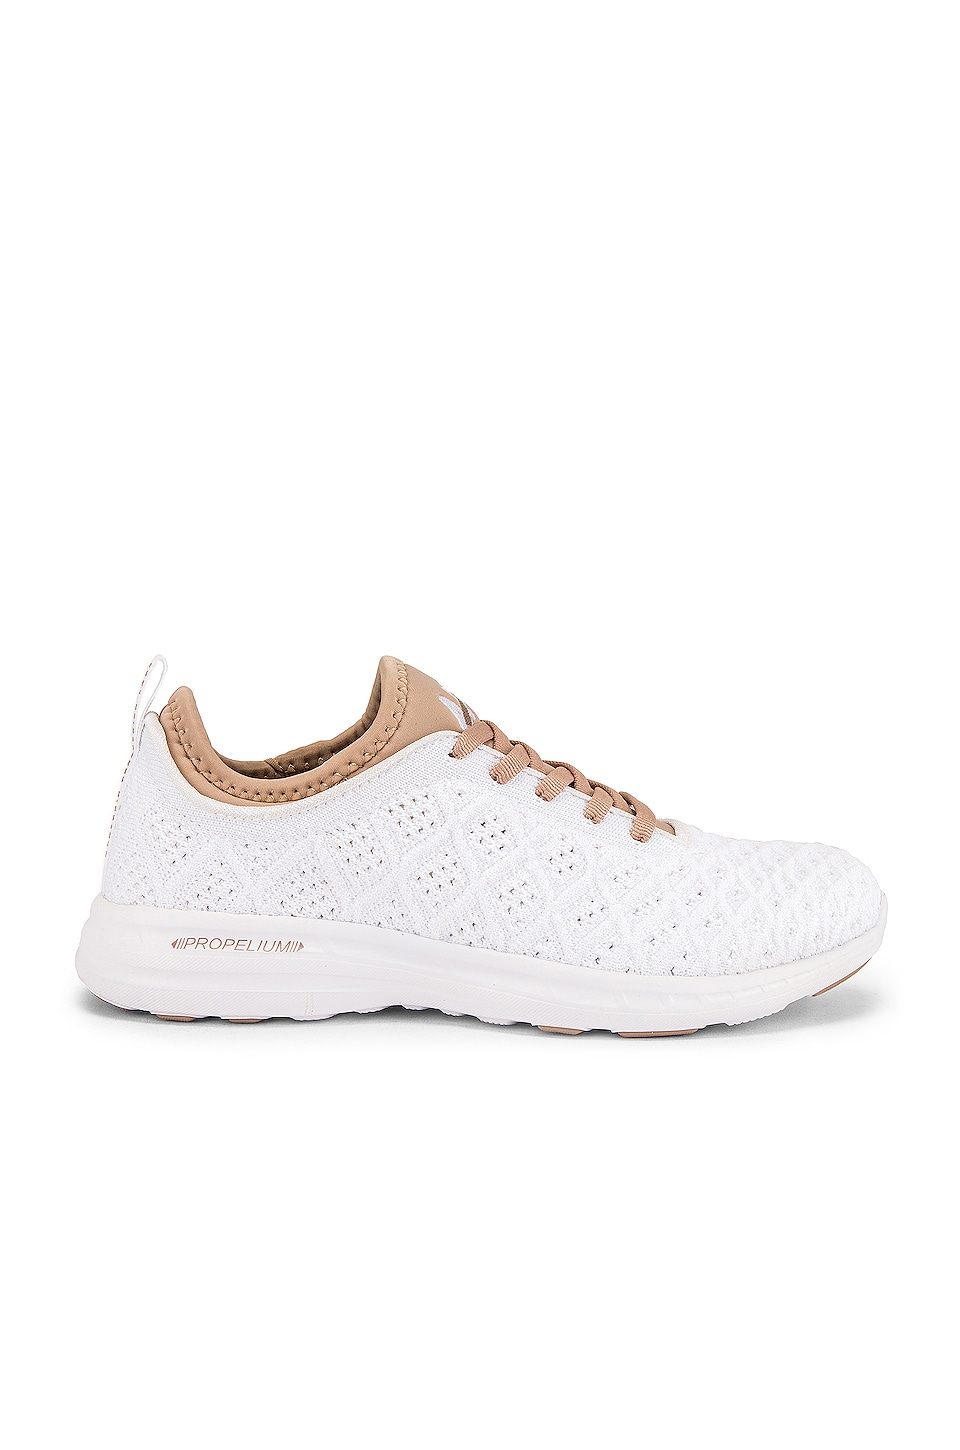 APL: Athletic Propulsion Labs TechLoom Phantom Sneaker in White & Almond